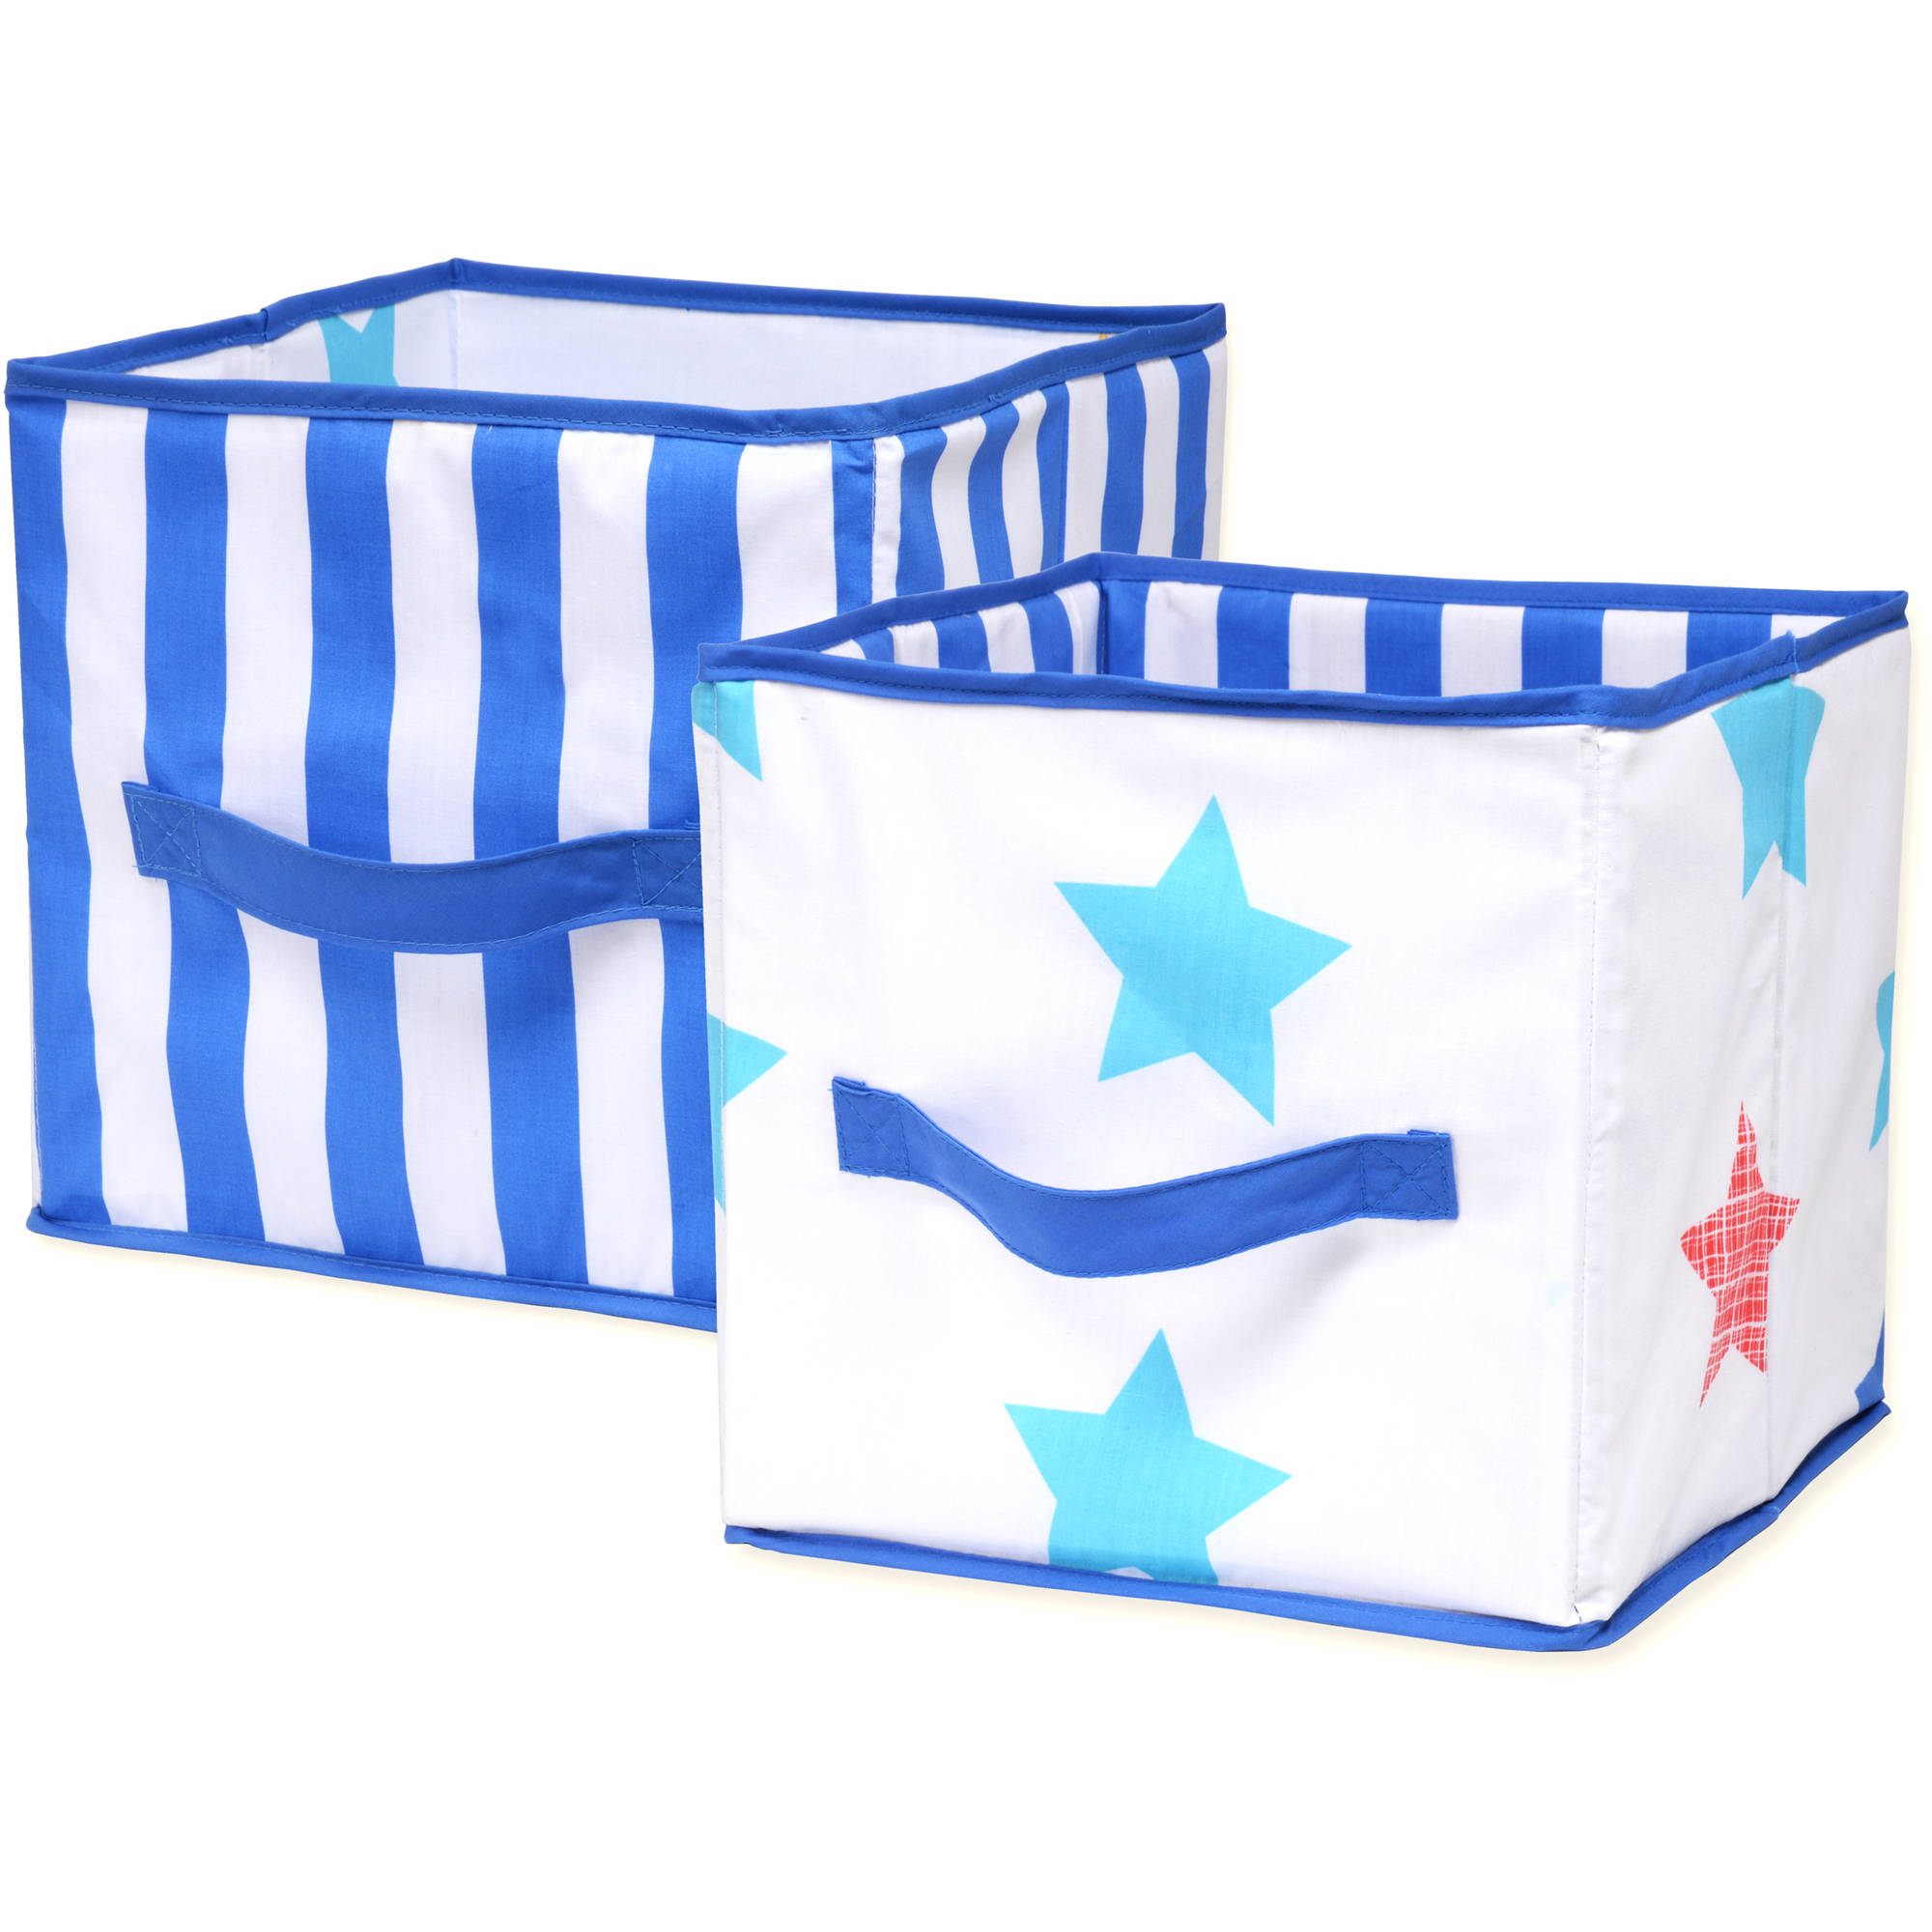 Little Bedding by Nojo Boy Stars Print Collapsible Storage Bin, 2pk